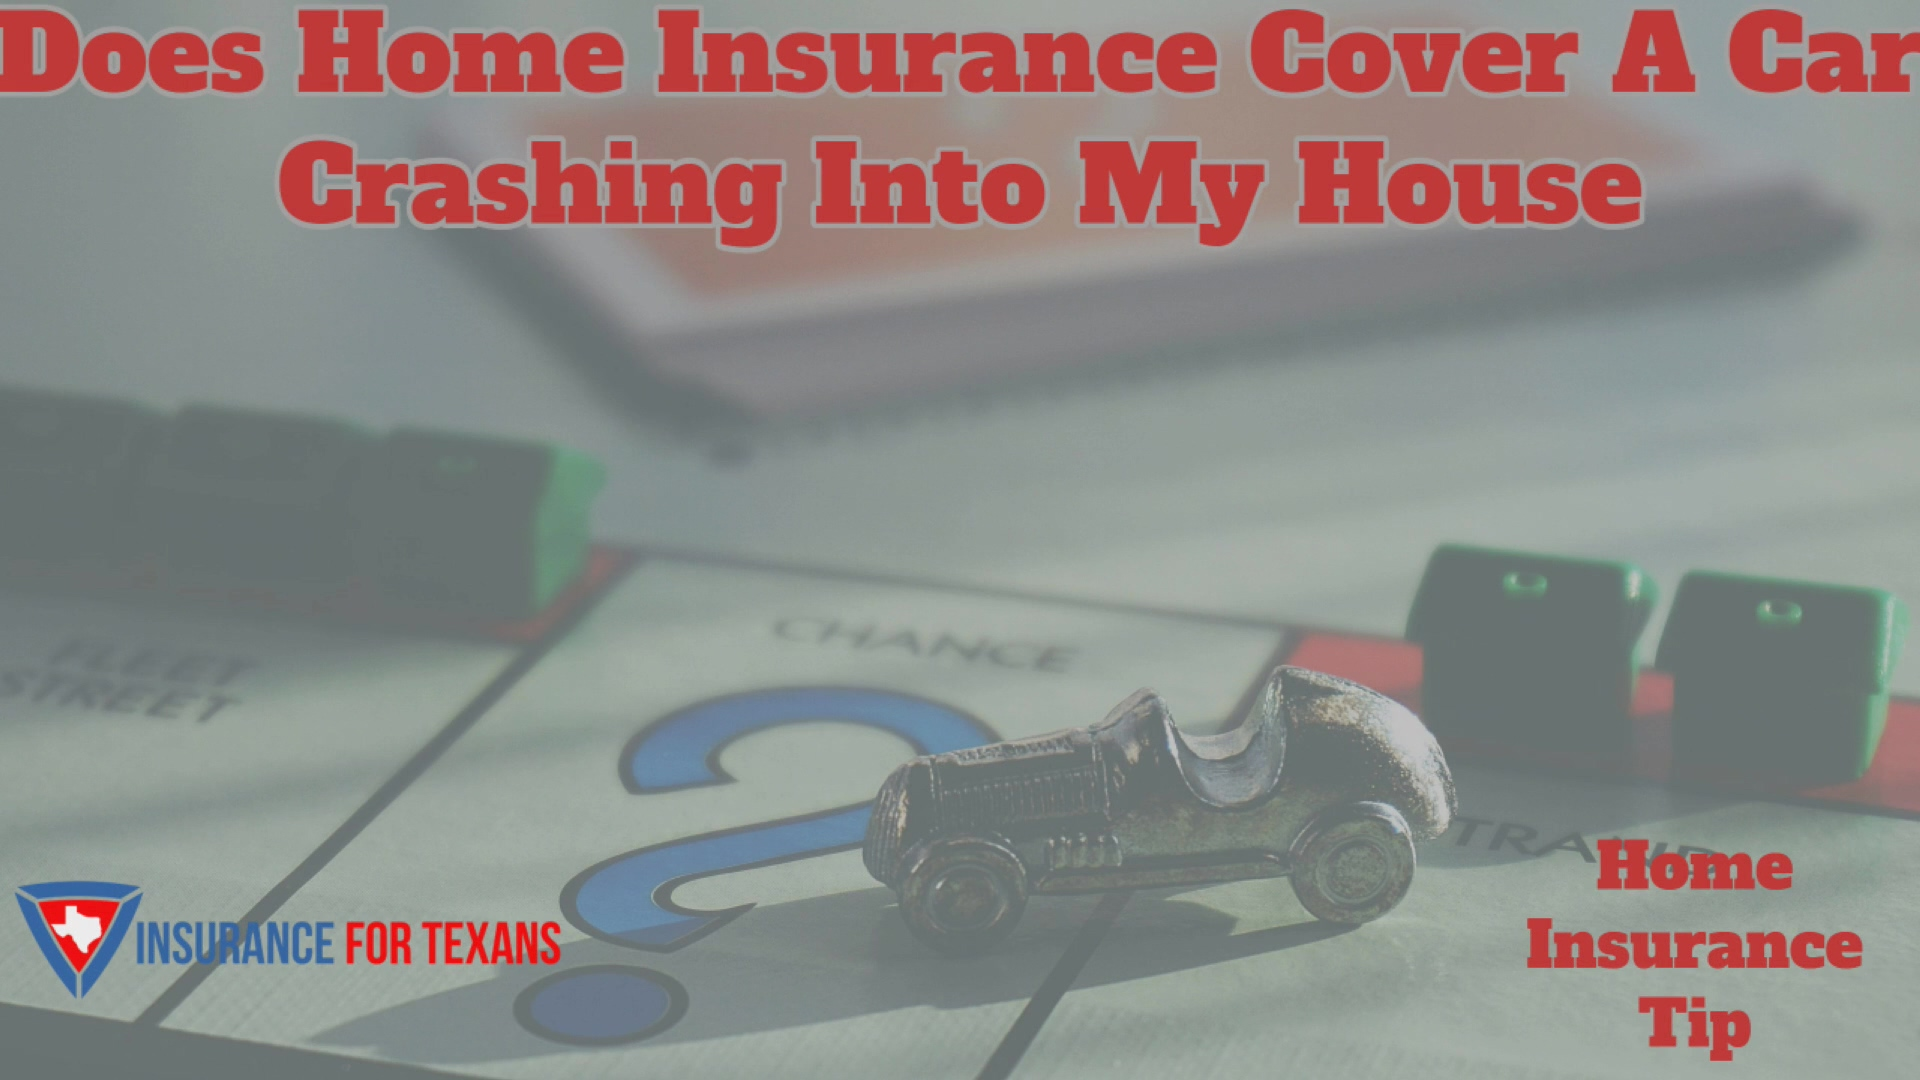 Does Home Insurance Cover A Car Crashing Into My House